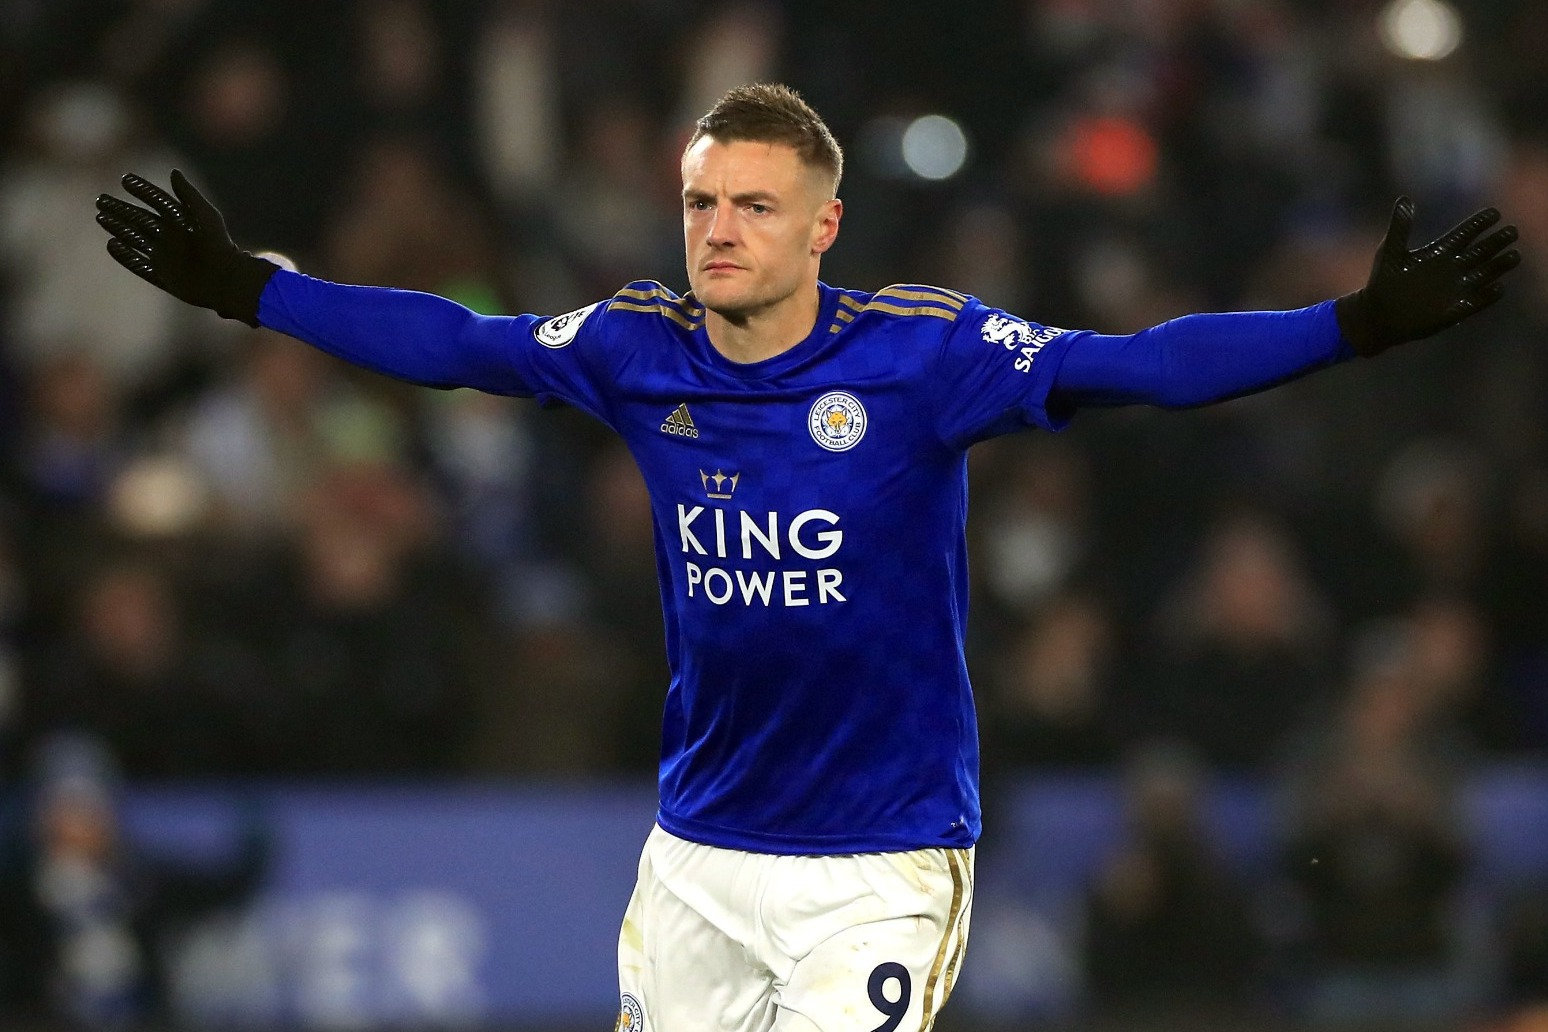 JAMIE VARDY \'OVER THE MOON\' AS REBEKAH GIVES BIRTH TO NEW MEMBER OF TEAM